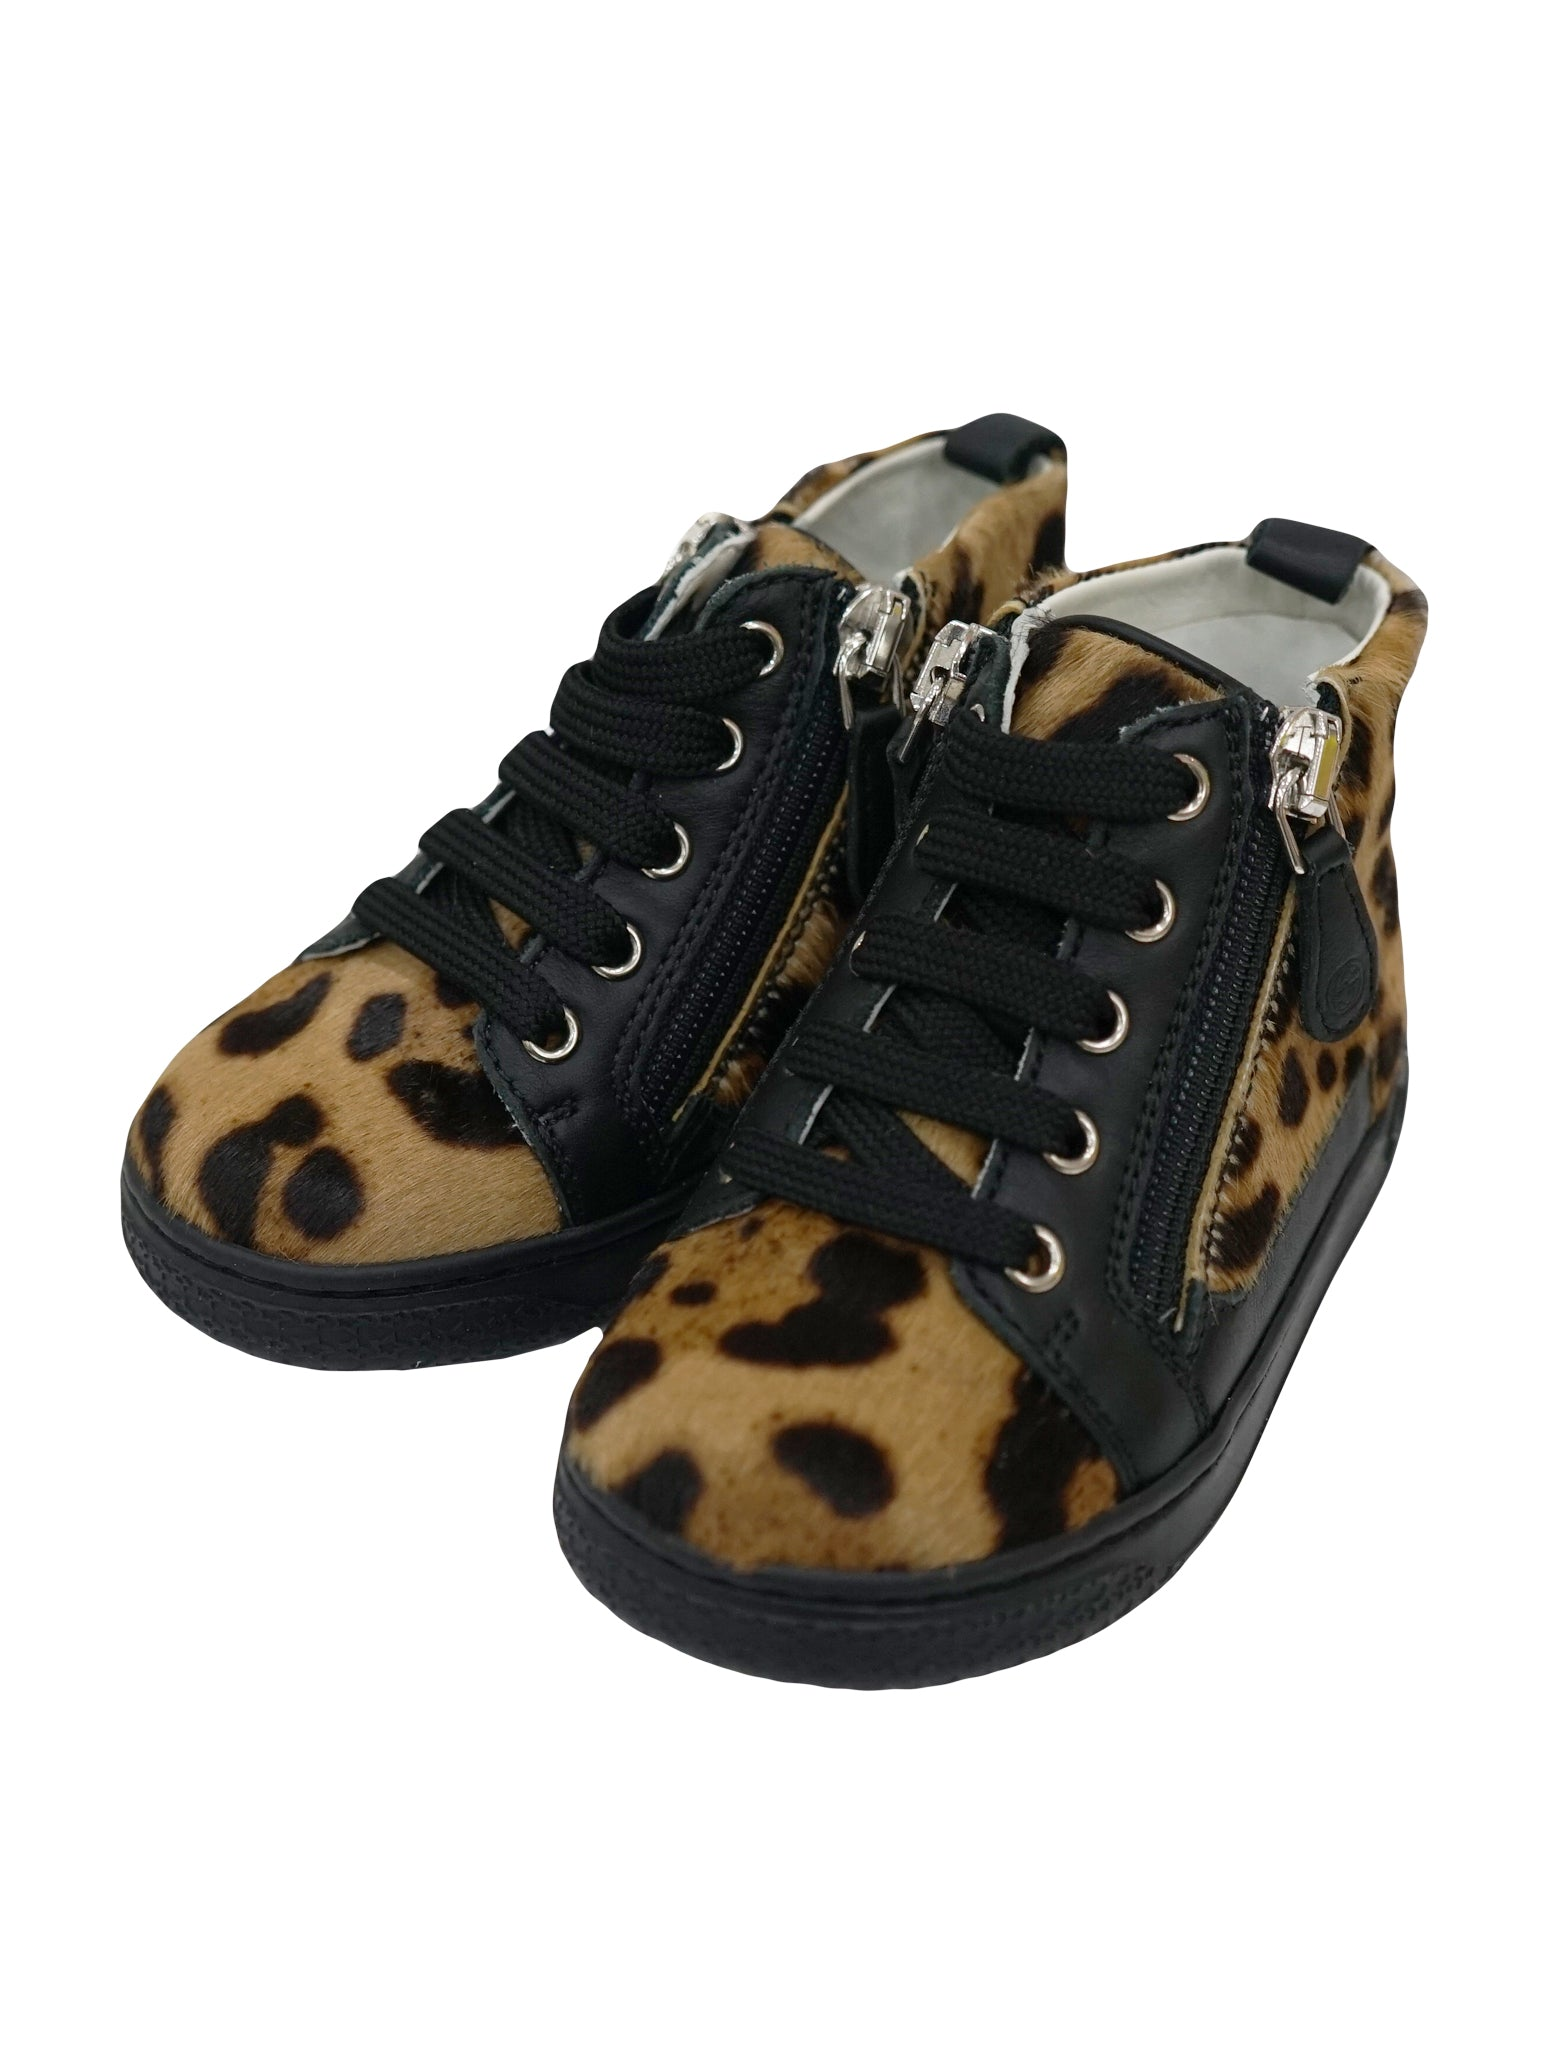 GUCCI BOY SHOES, GUCCI BABY BOY SHOES, GUCCI SHOES